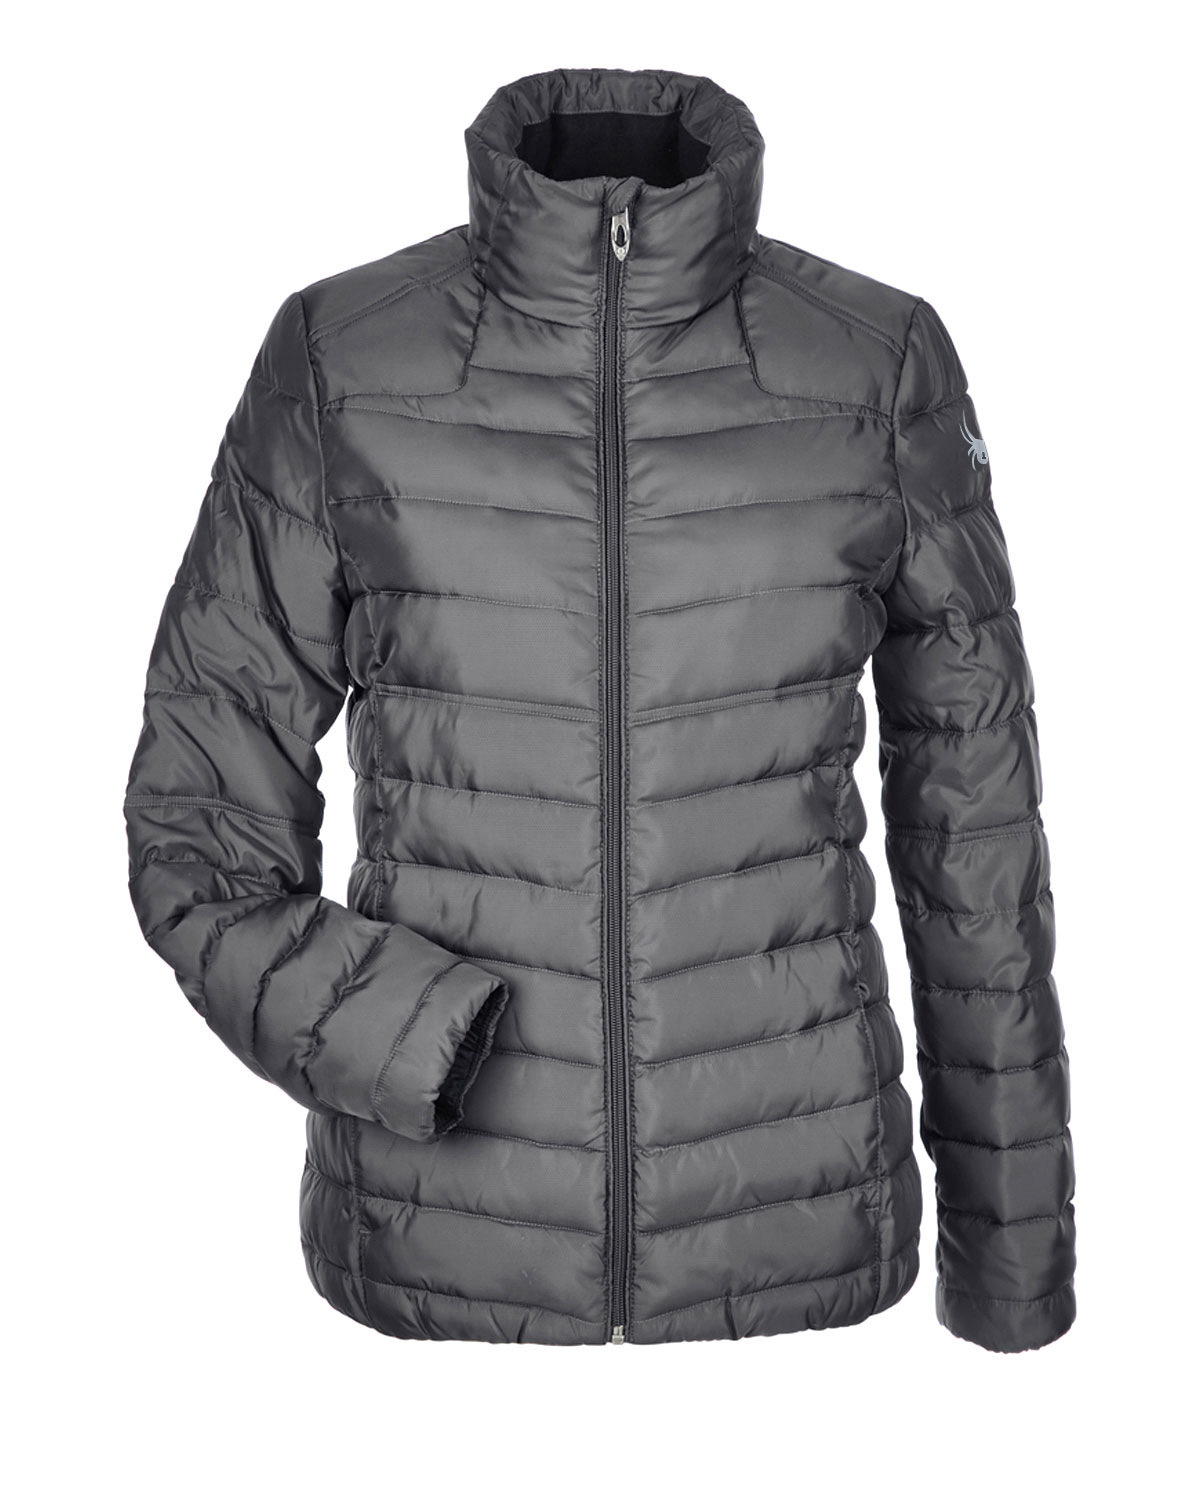 Spyder Ladies Supreme Insulated Puffer Jacket